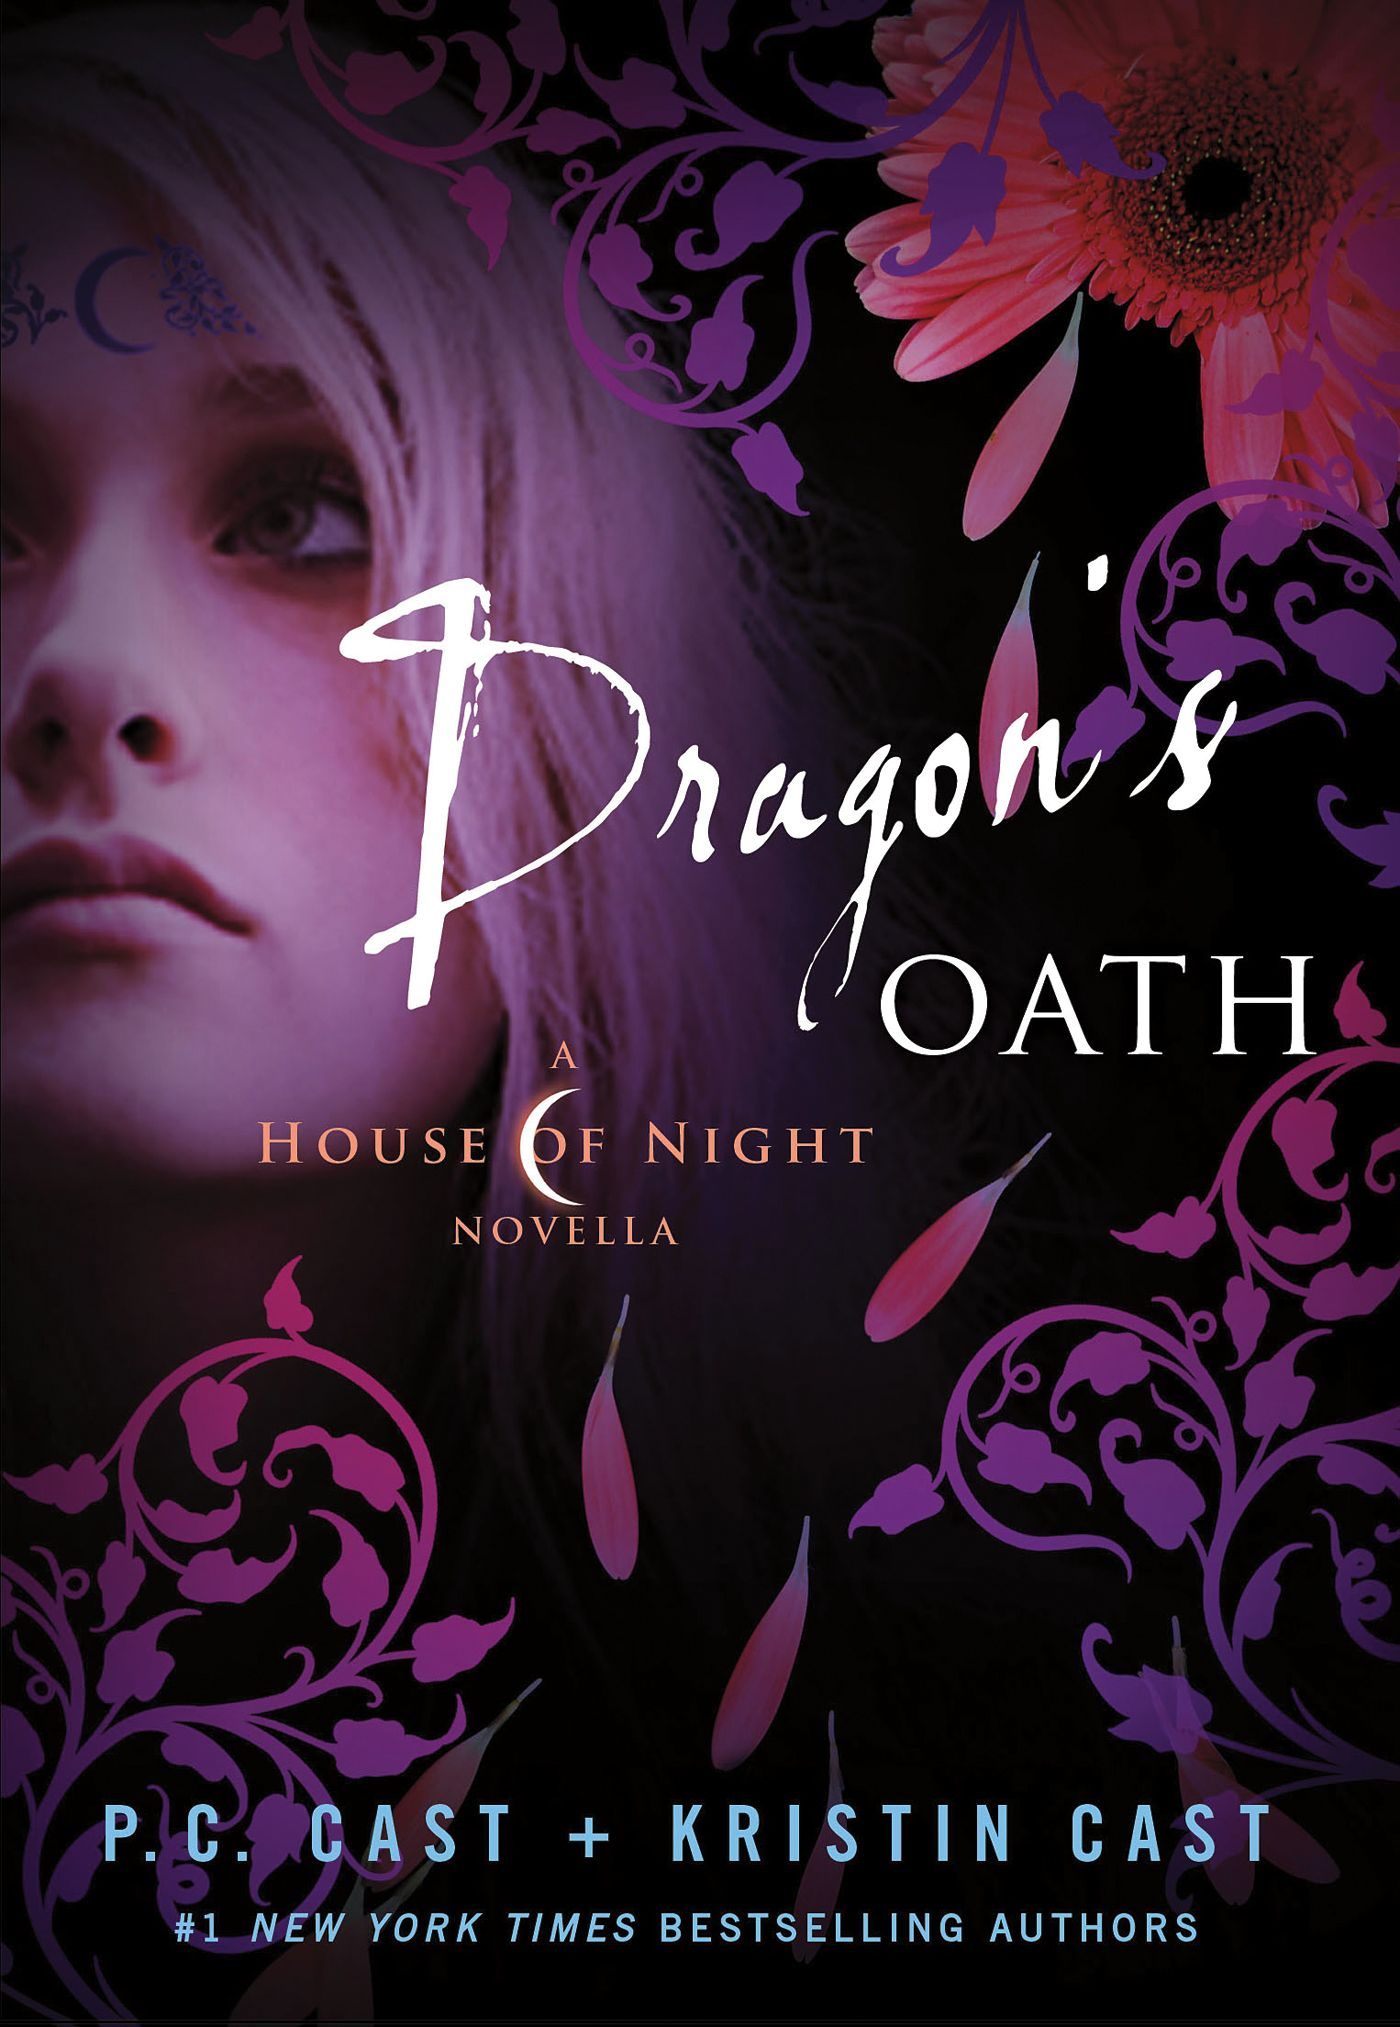 Dragon's Oath by P.C. Cast and Kristin Cast a House of Night ...